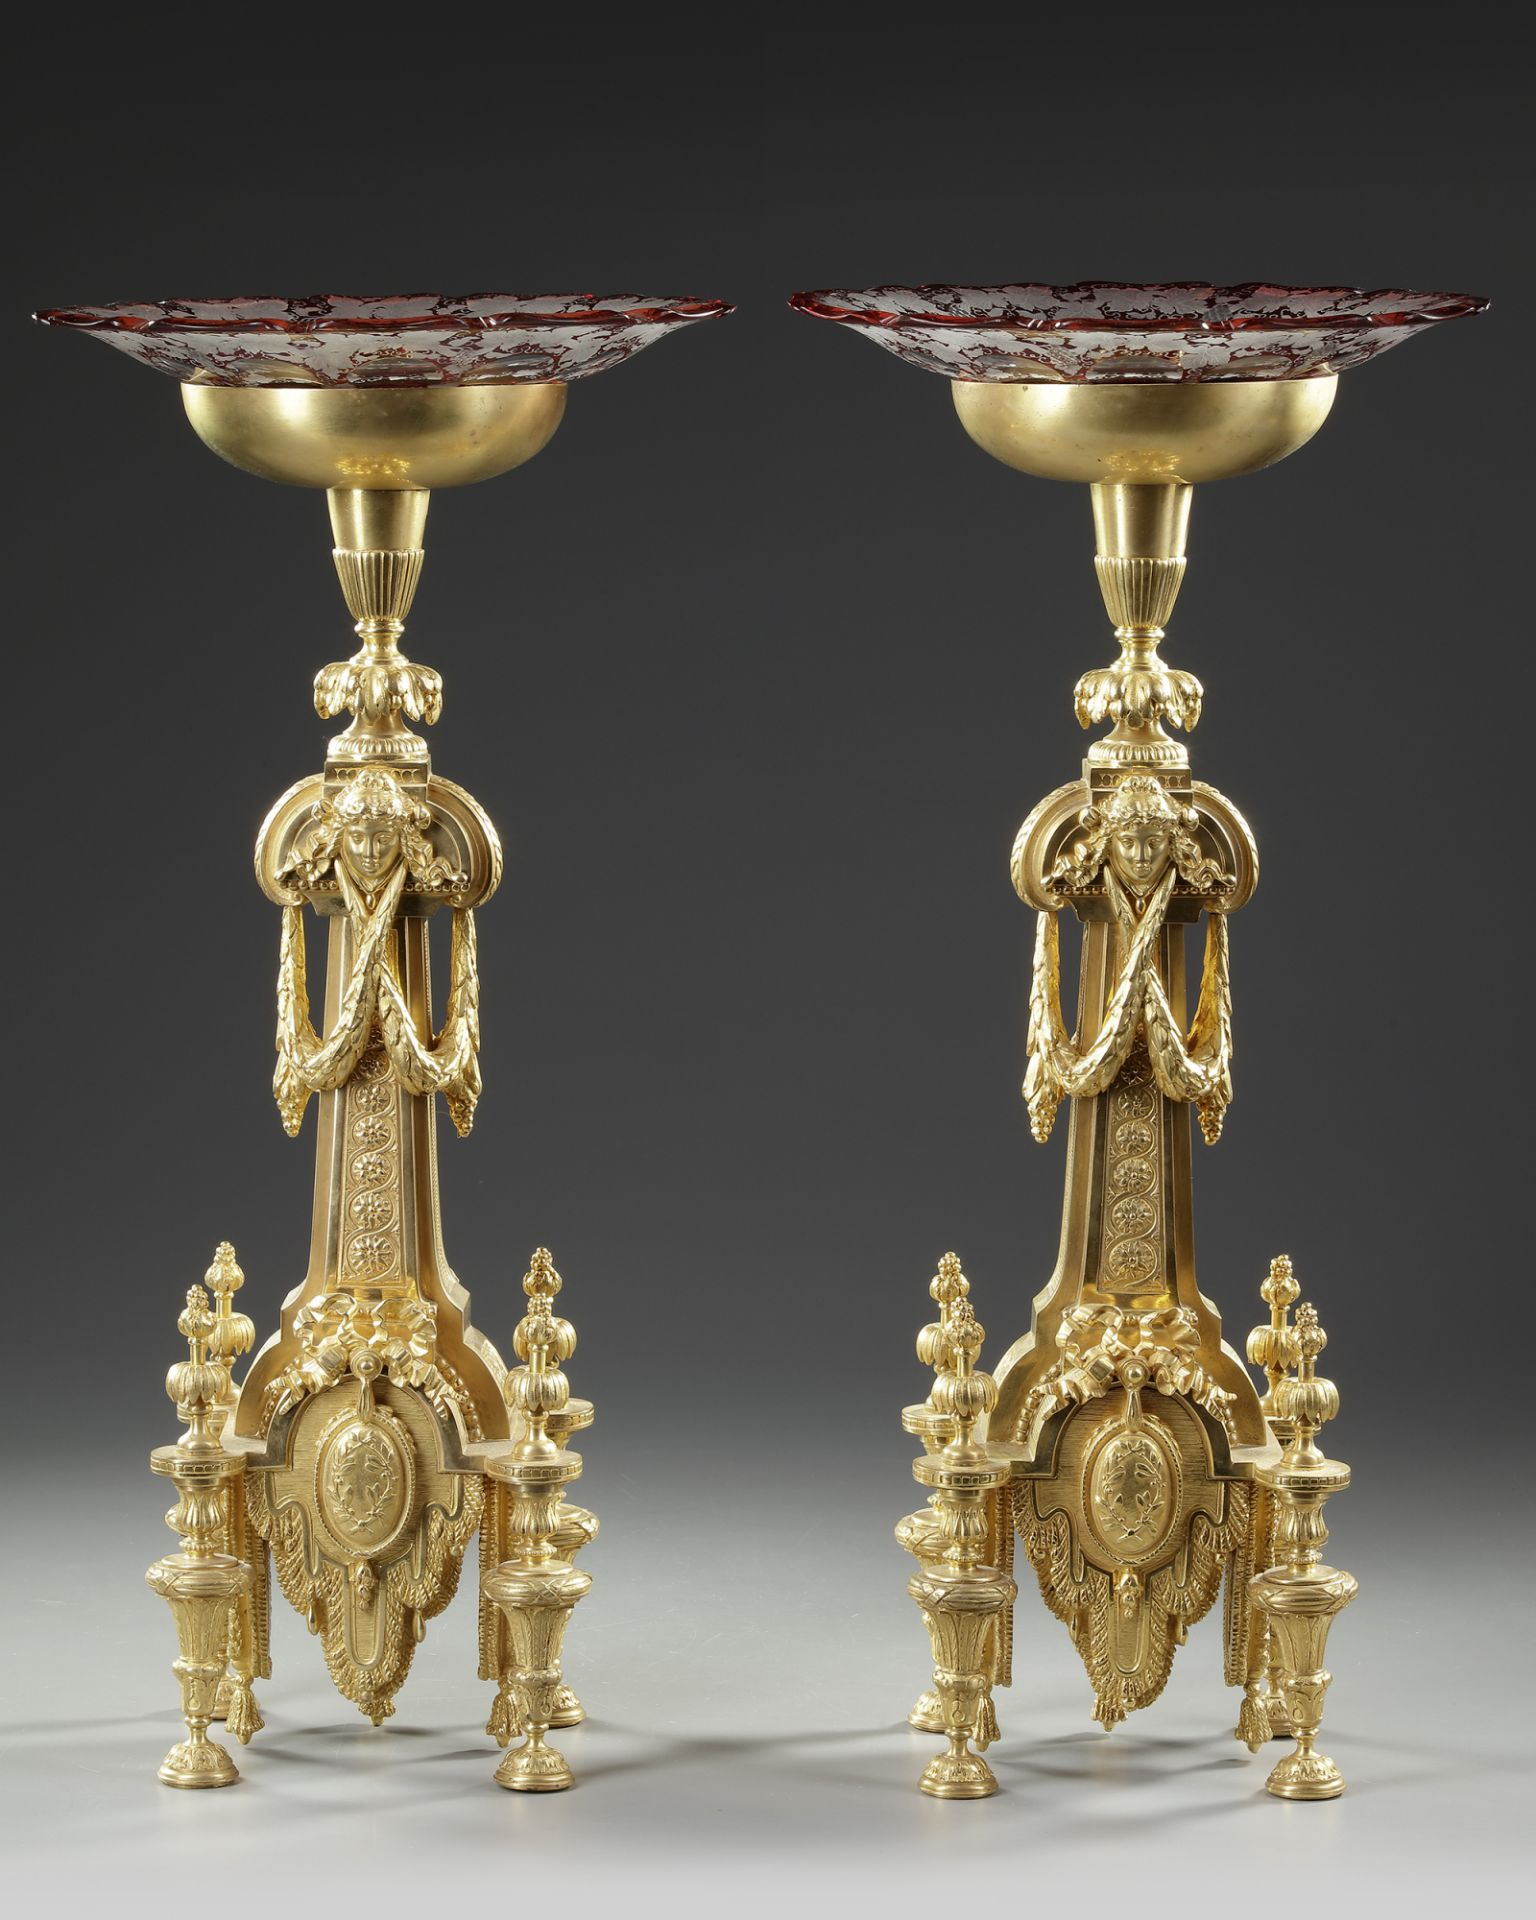 A PAIR OF ORMOLU CENTERPIECES, FRANCE, 19TH CENTURY